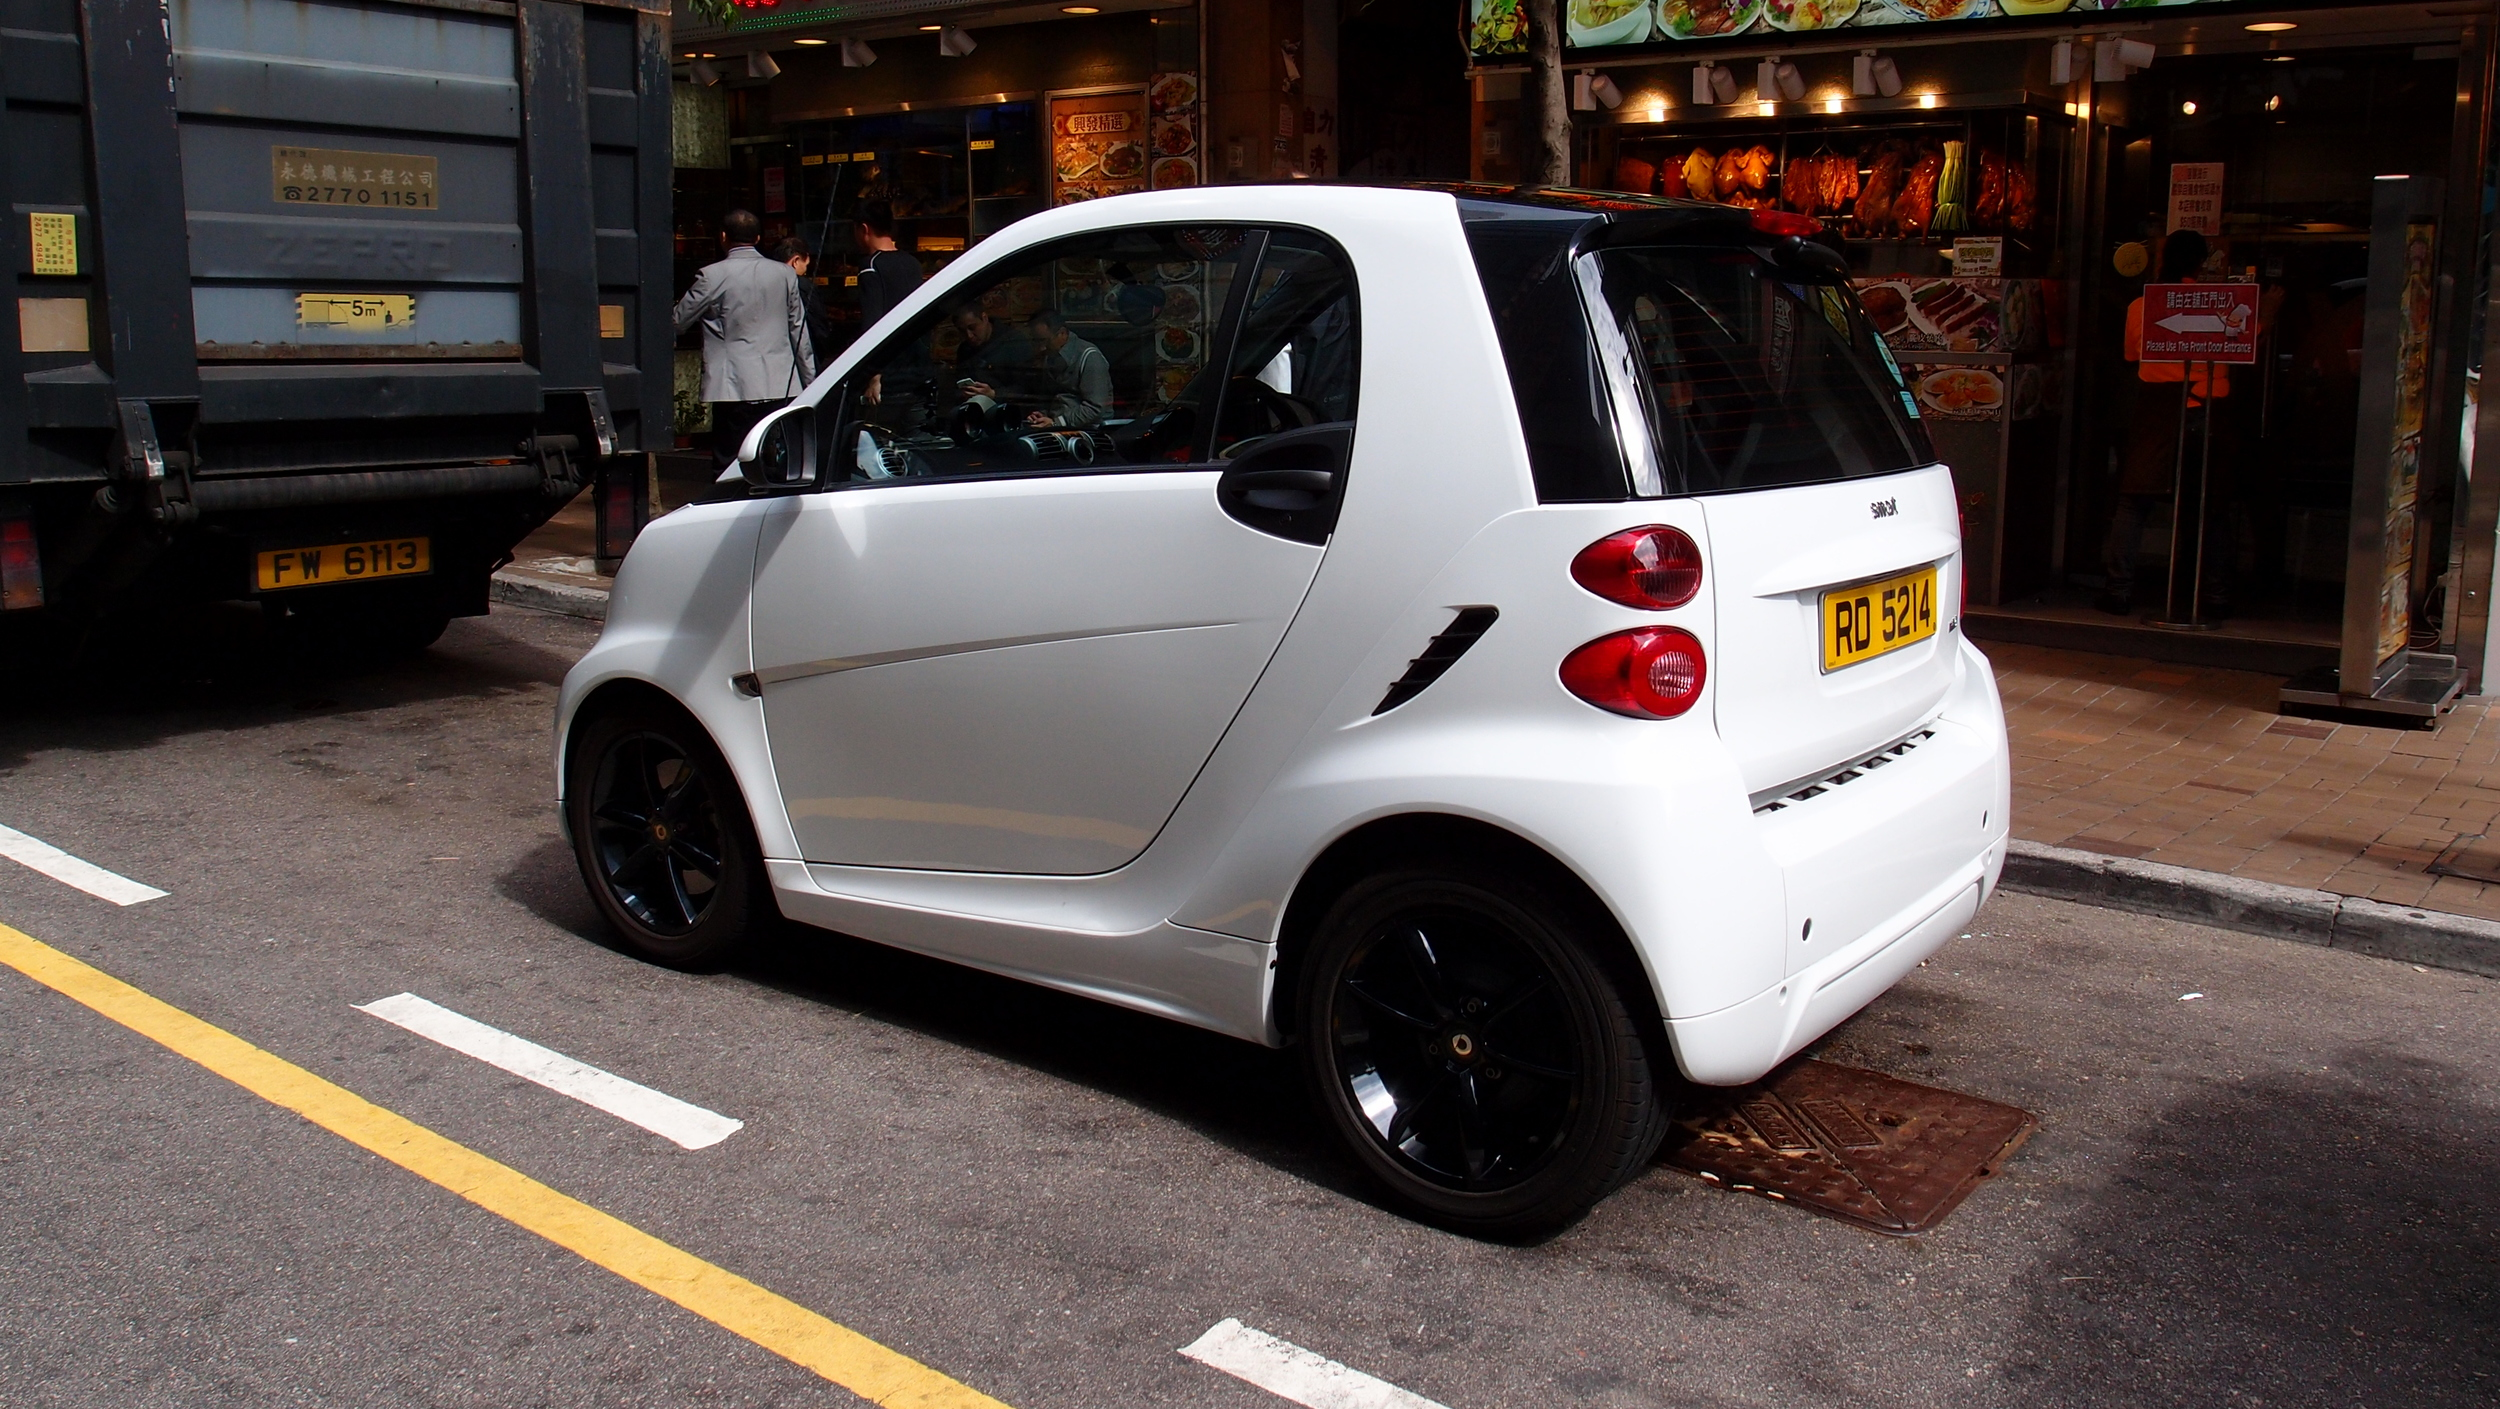 Quite simply the worst car ever invented, even the Reliant Robin has more class than this abomination!